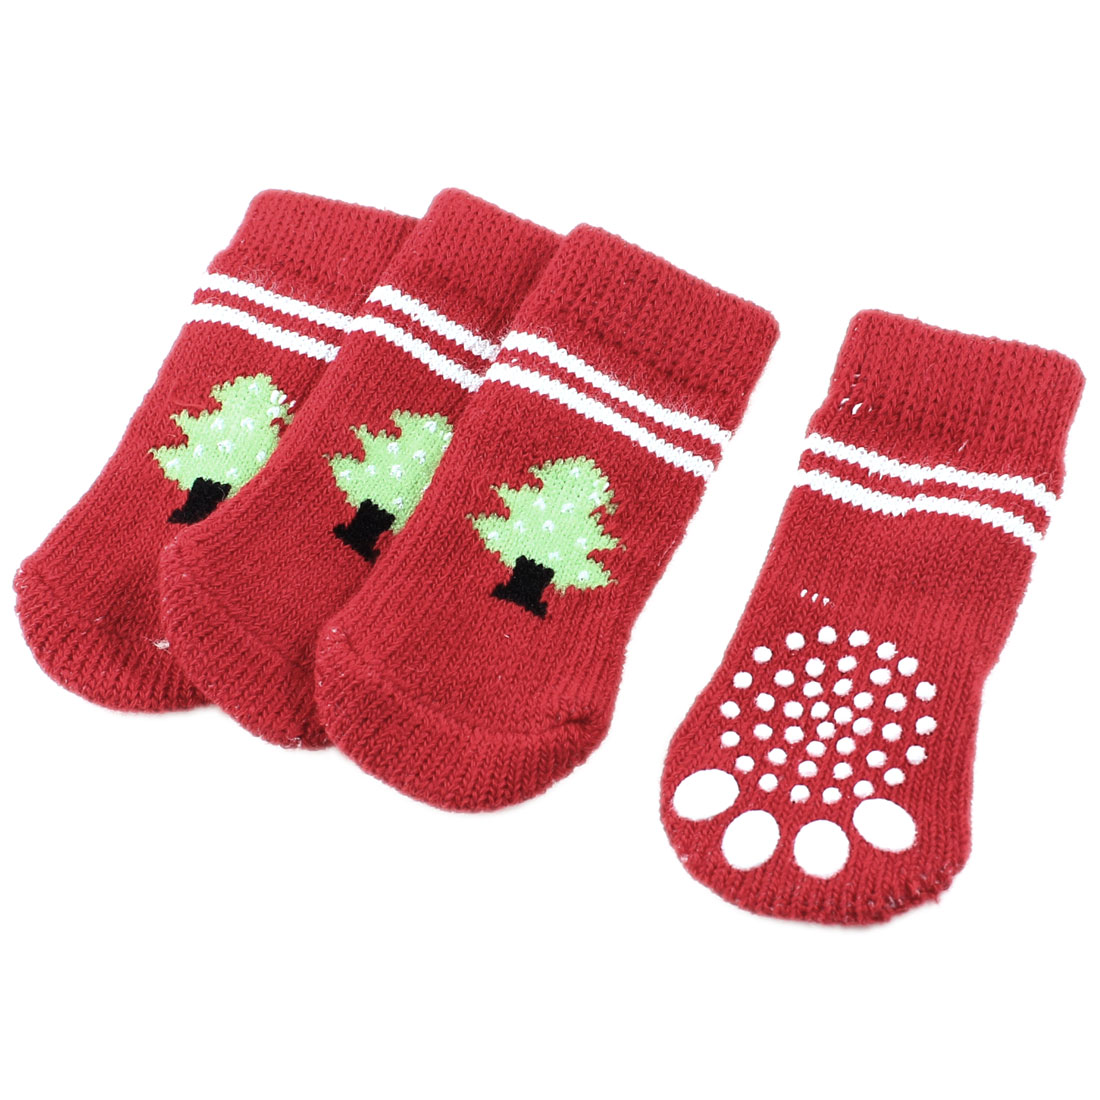 2 Pairs Red Nonslip Christmas Tree Printed Acrylic Doggie Puppy Pet Socks Size M